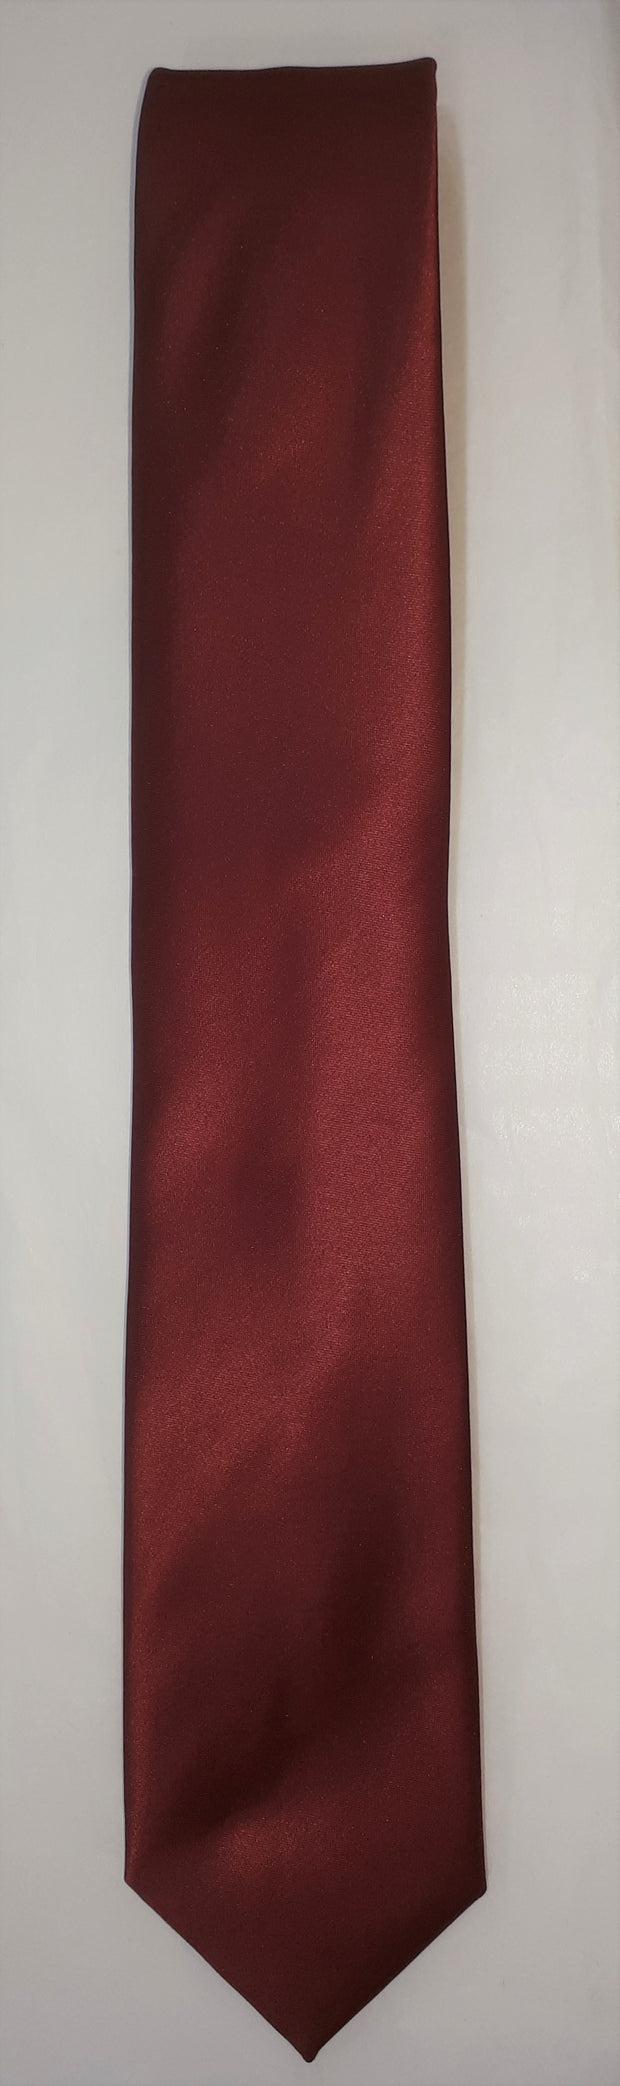 FORMAL SATIN TIE APPLE